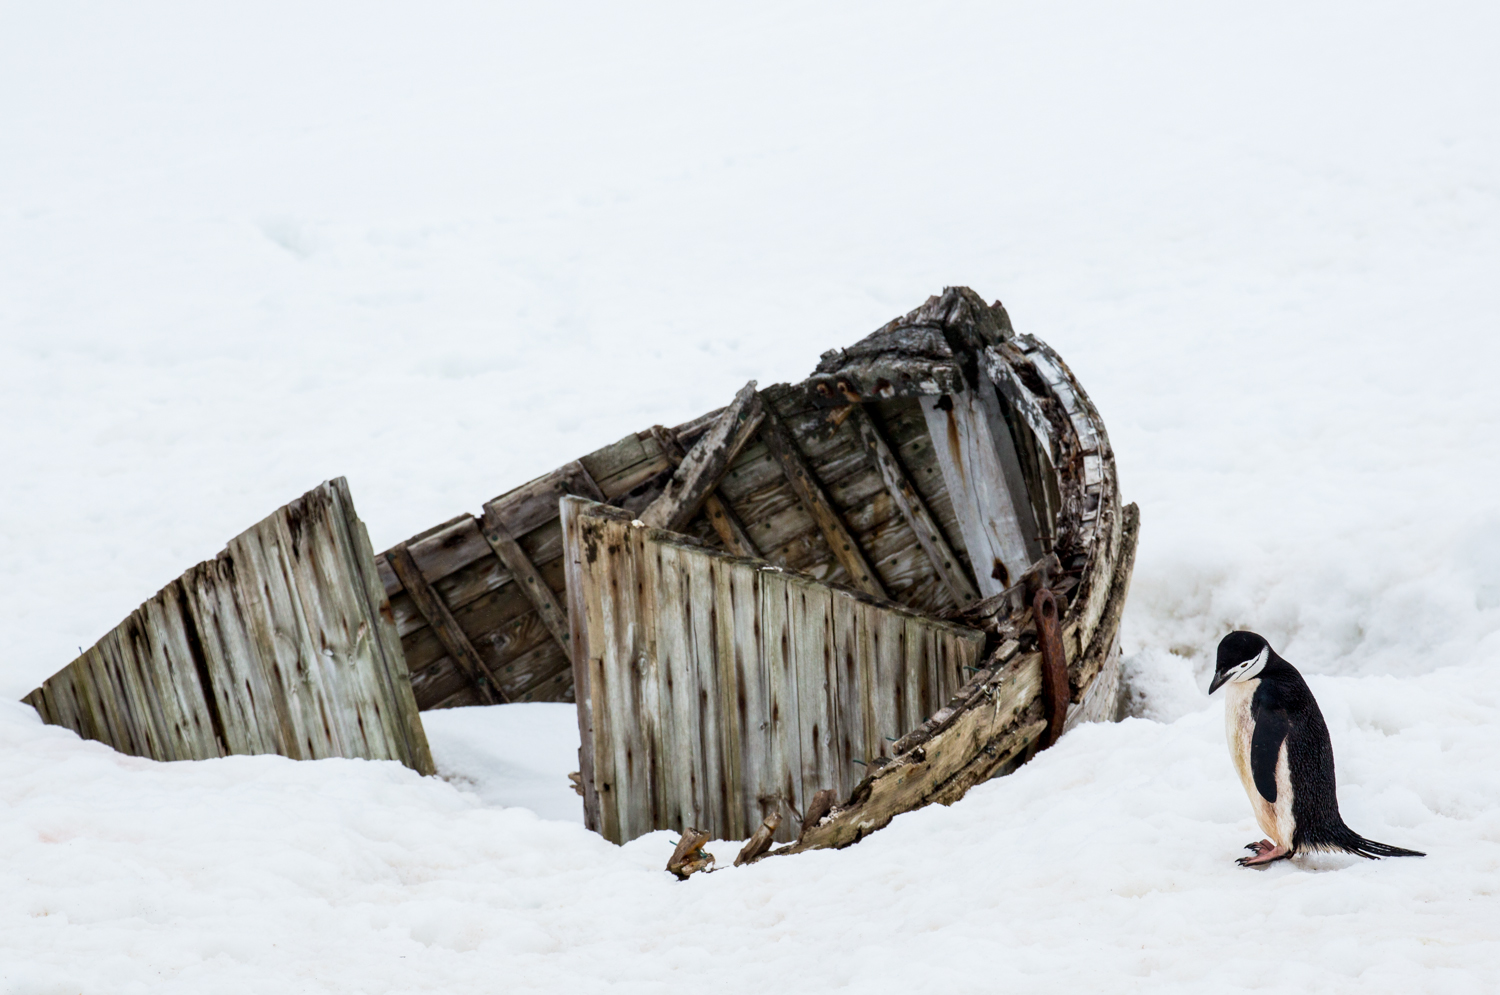 Wreck of an old whaling ship on Half Moon Island.